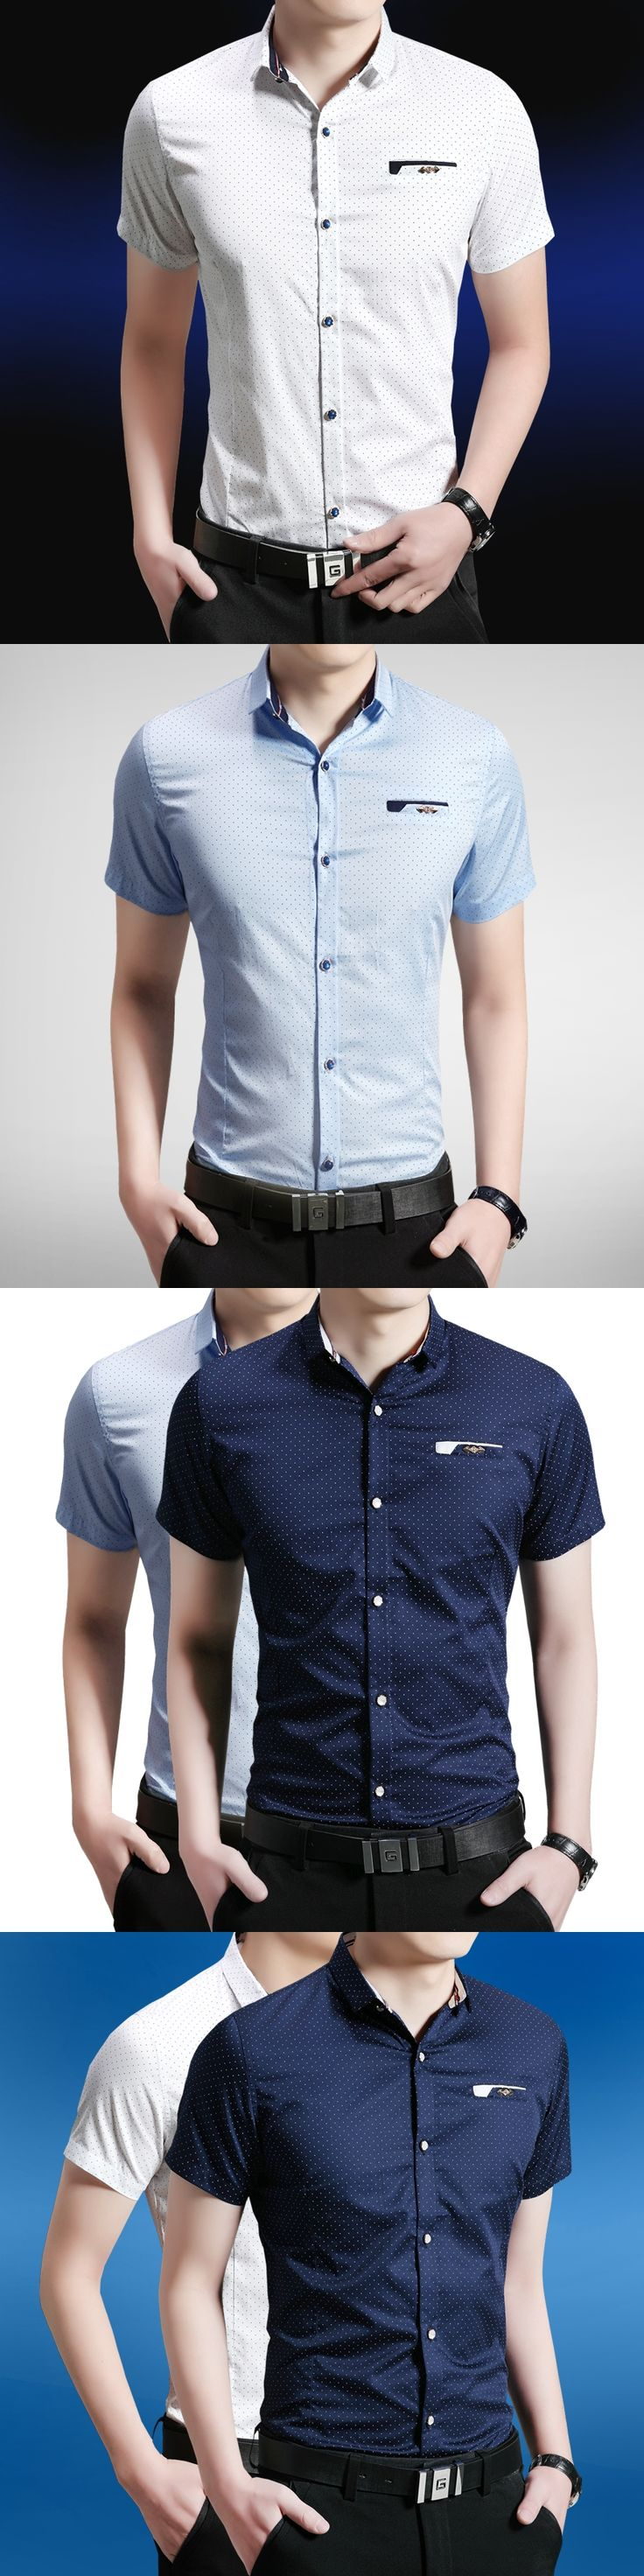 Hot  Arrial 2017 New Men Jeans Shirts Summer  Cotton Water Washing Male Tops Short Sleeve  Printed  Denim shirt For Men 5XL